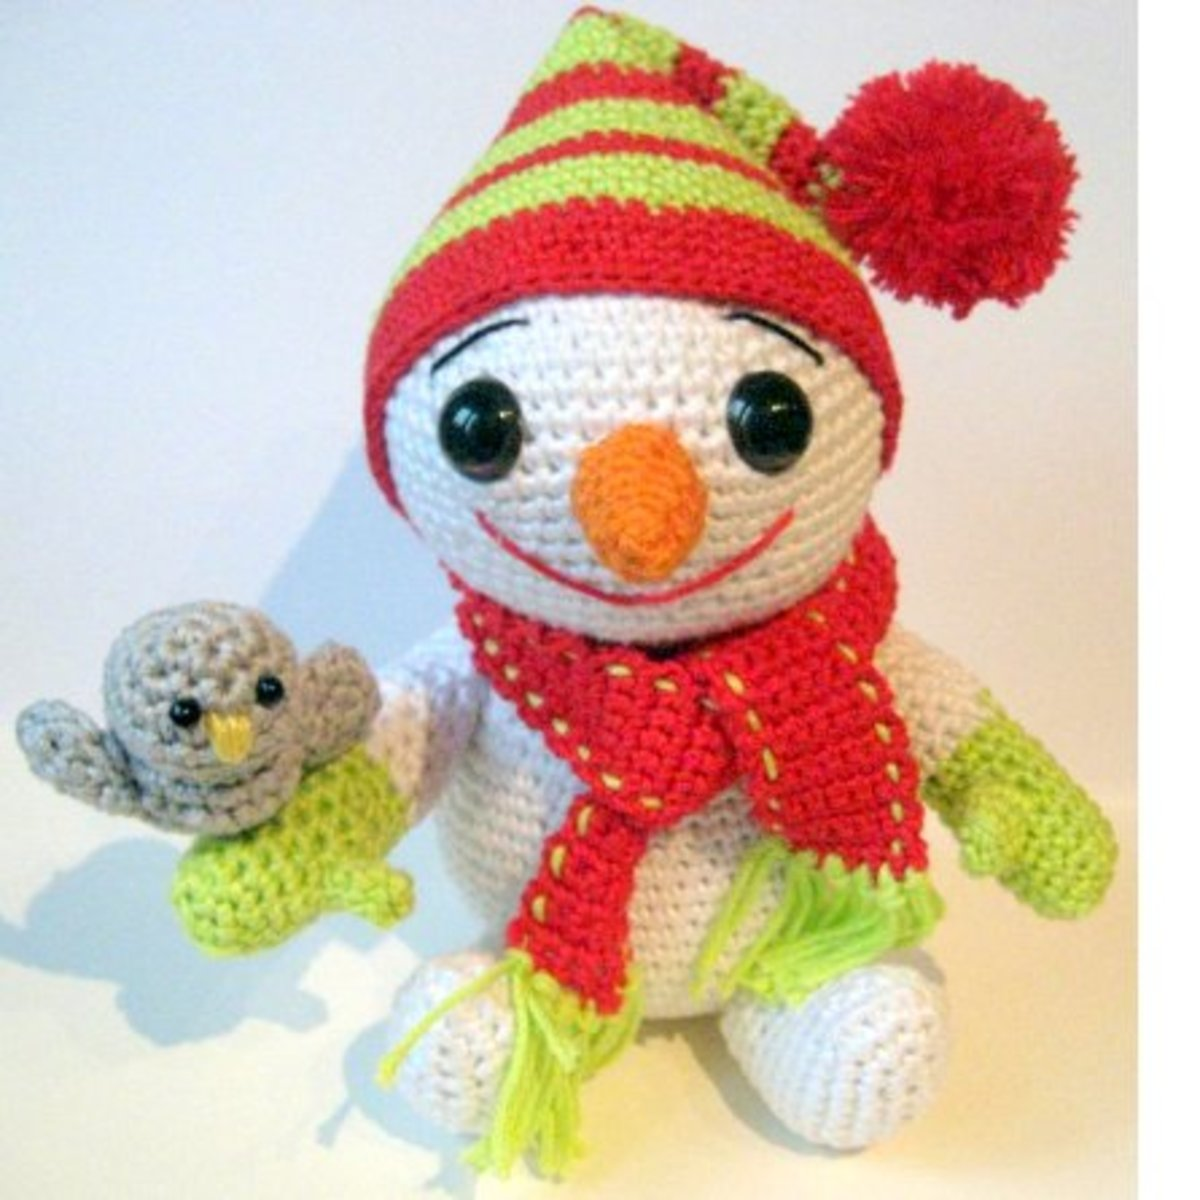 Free crochet patterns amigurumi snowman little Christmas bird.